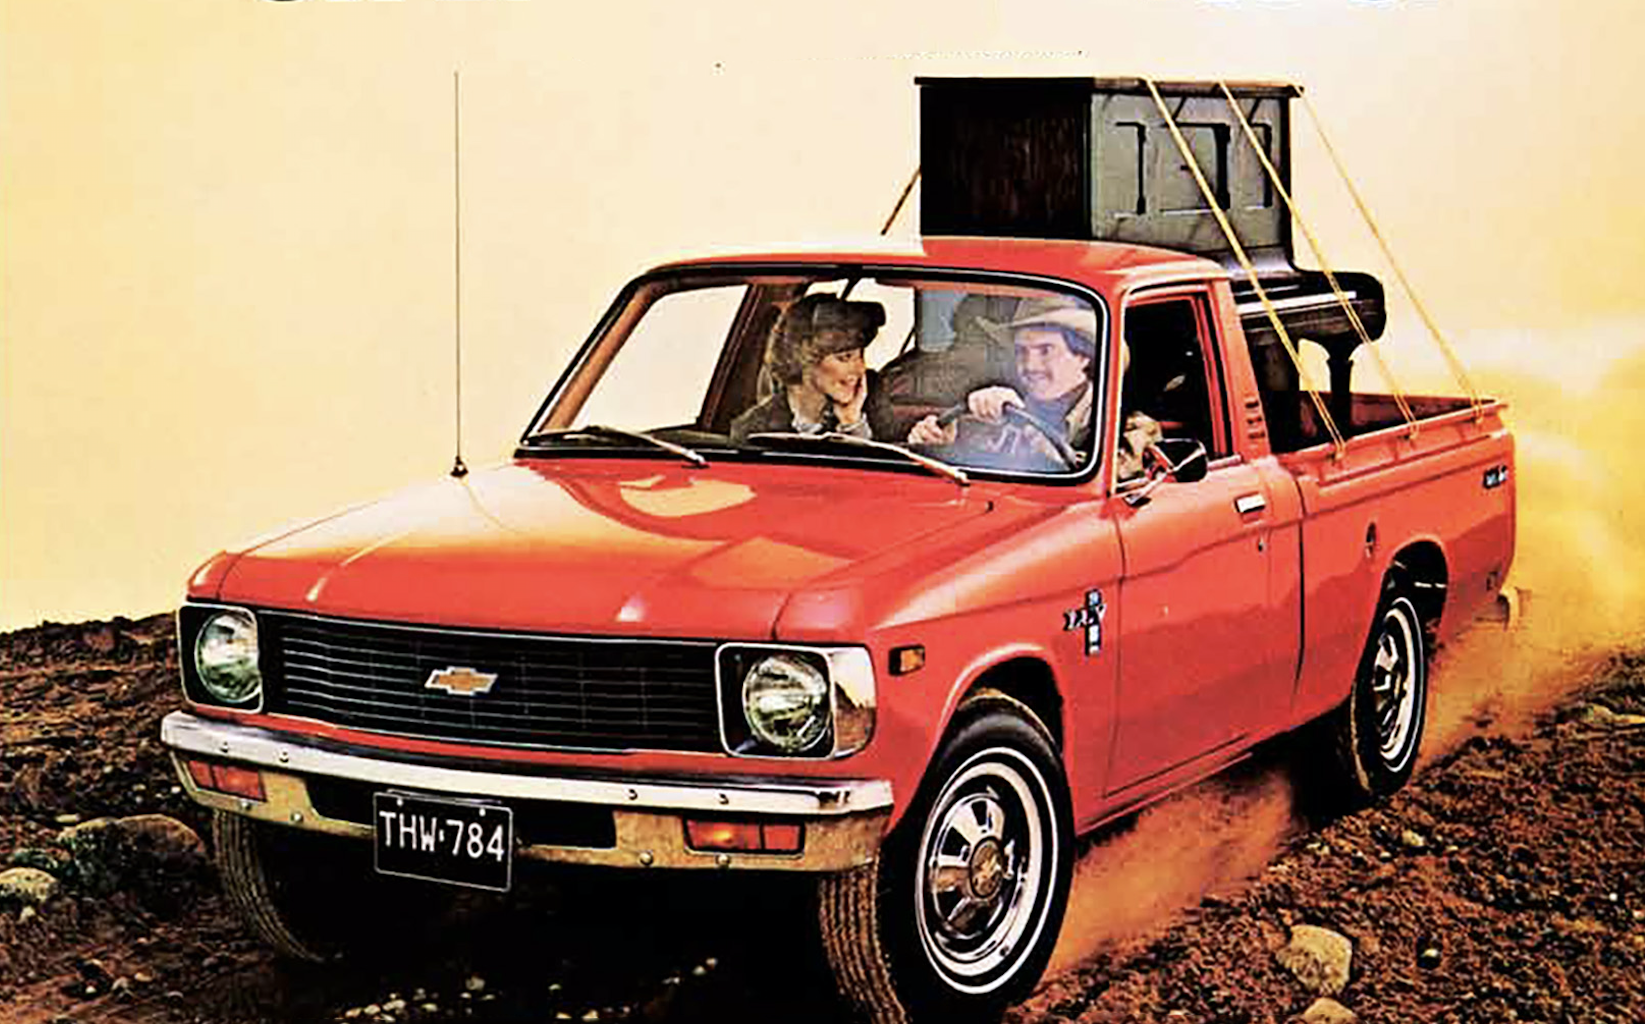 A Gallery of Small-Truck Ads